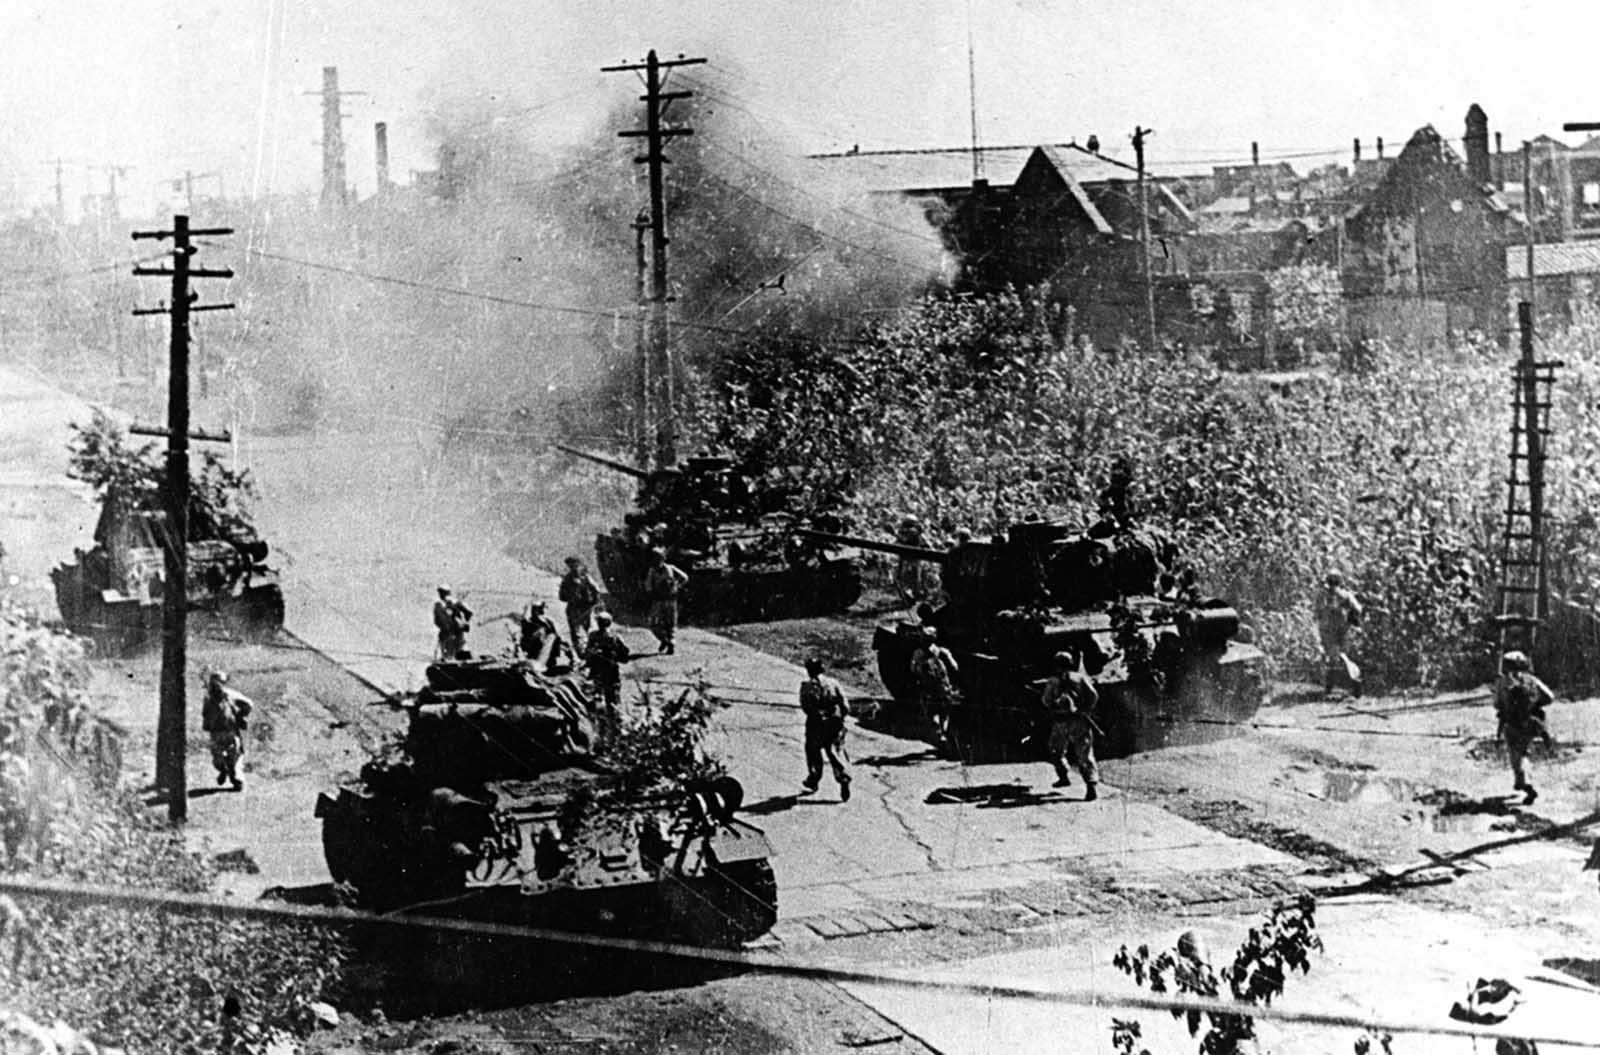 In this undated photo from North Korea's official Korean Central News Agency, distributed by Korea News Service, North Korean combatants plunge together with the tank unit in Seoul during the Korean War.